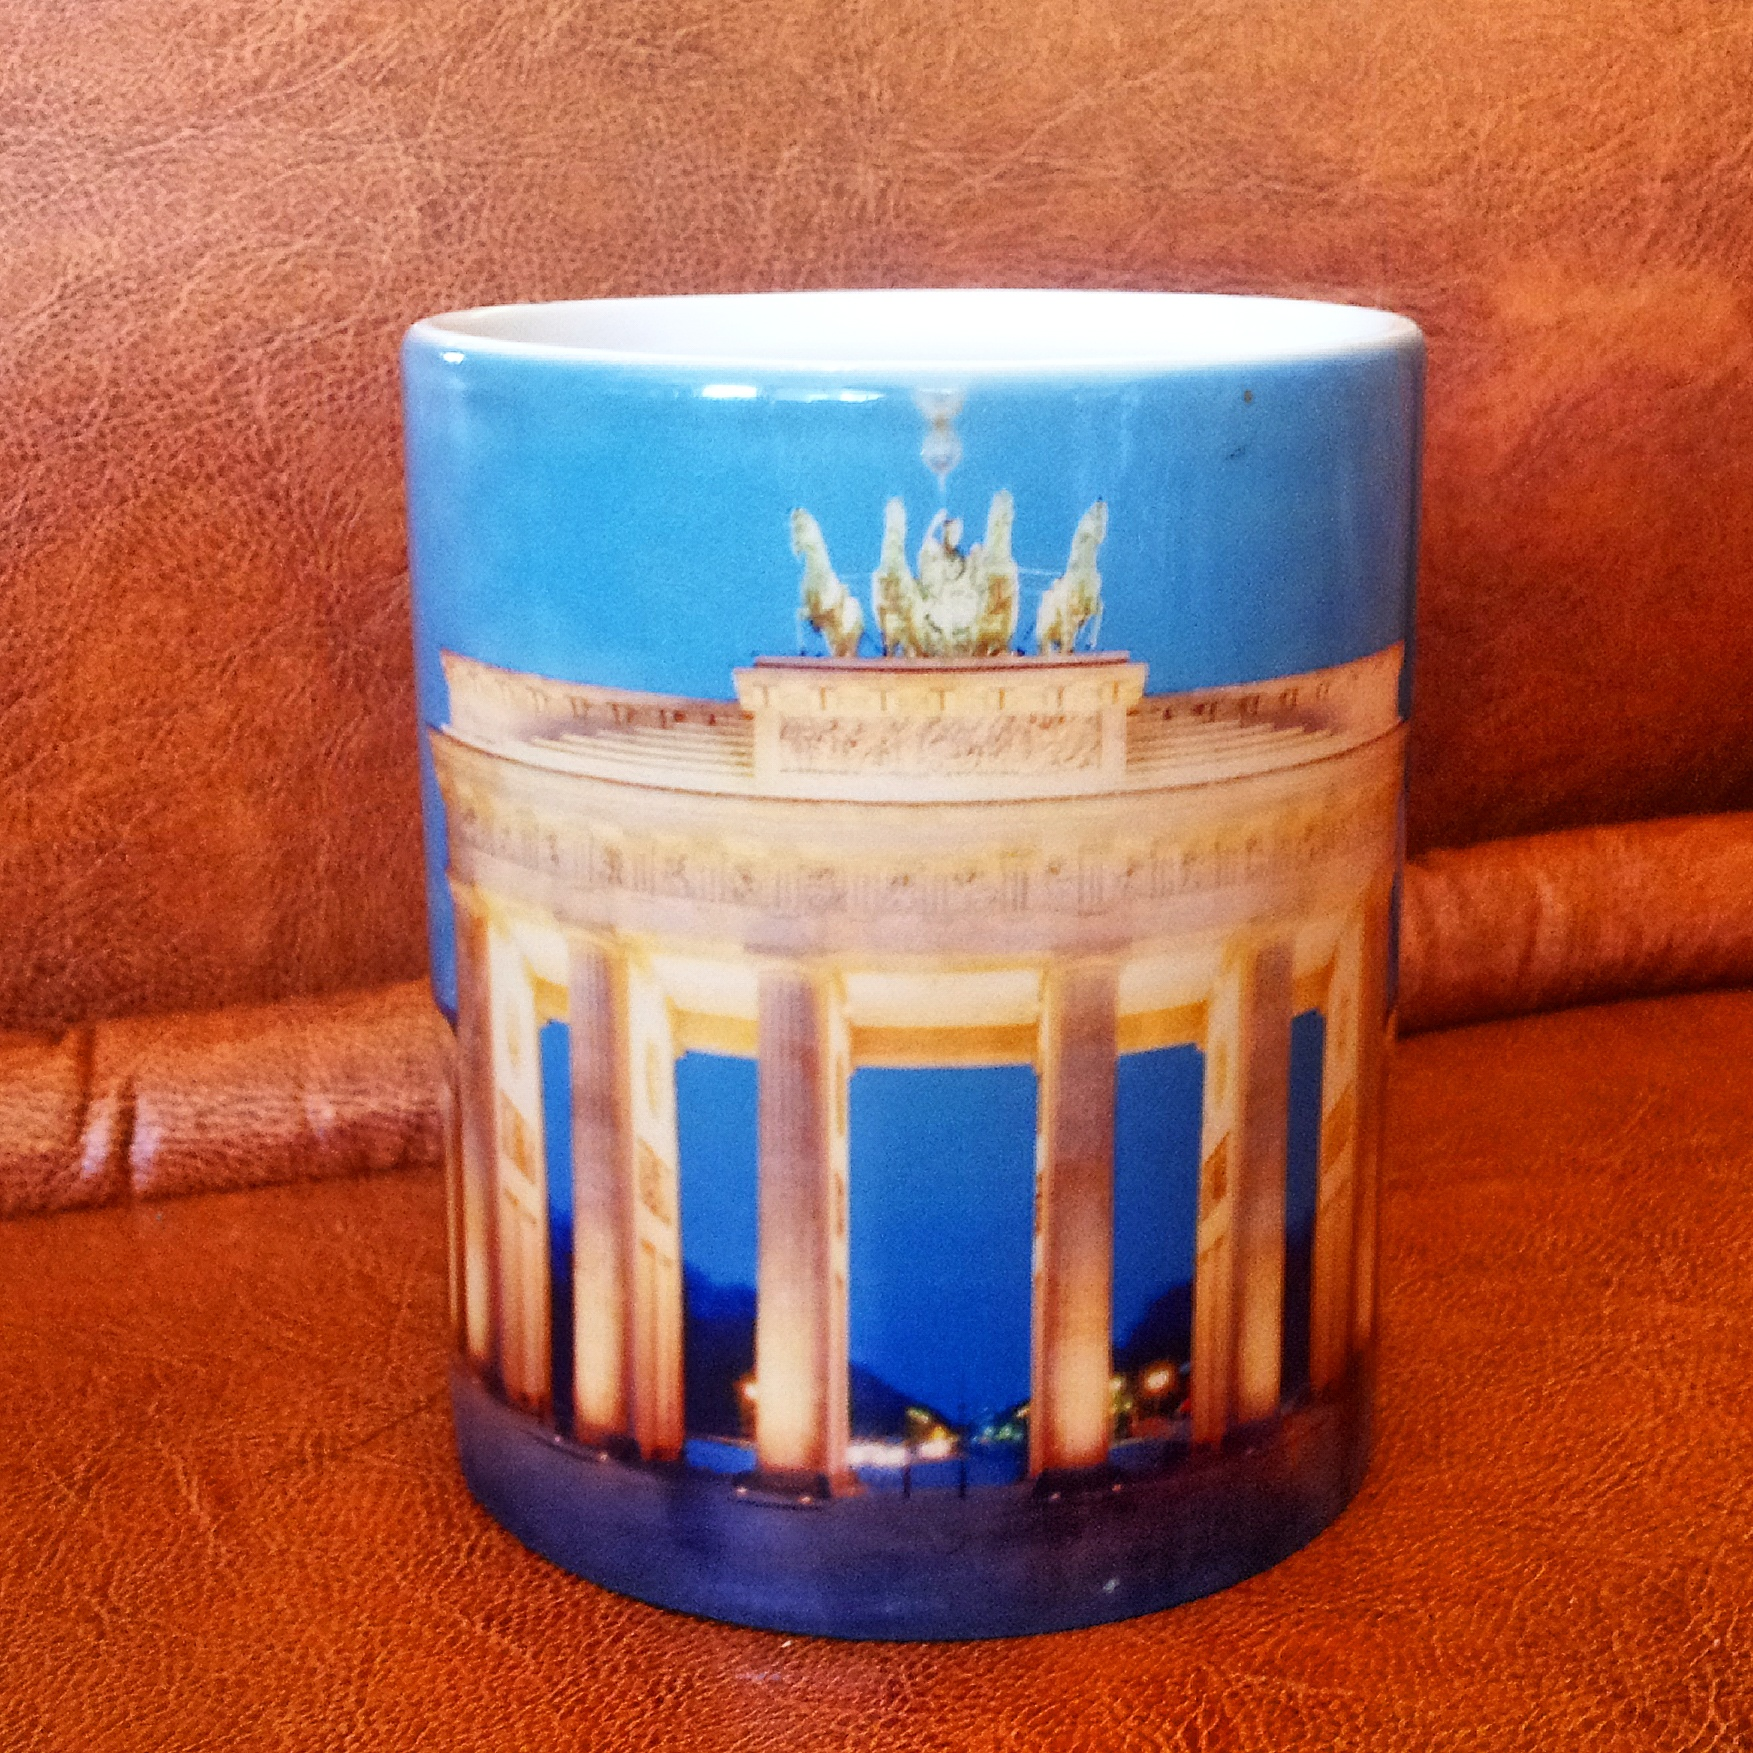 Heat sensitive mug from Berlin, Germany - travel souvenir